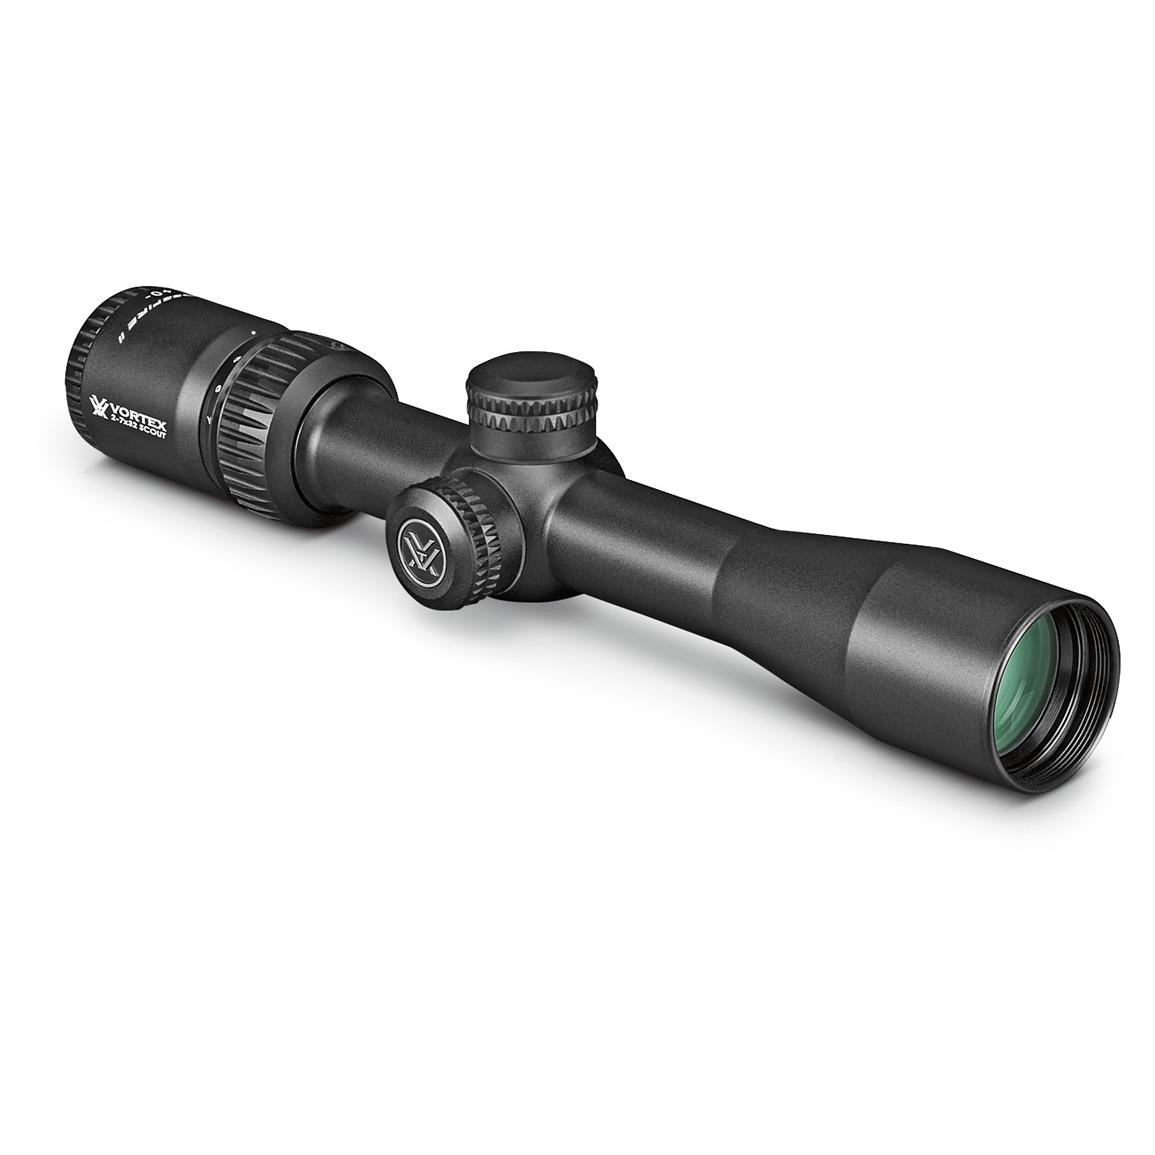 Vortex Crossfire II 2-7x32mm Scout Rifle Scope